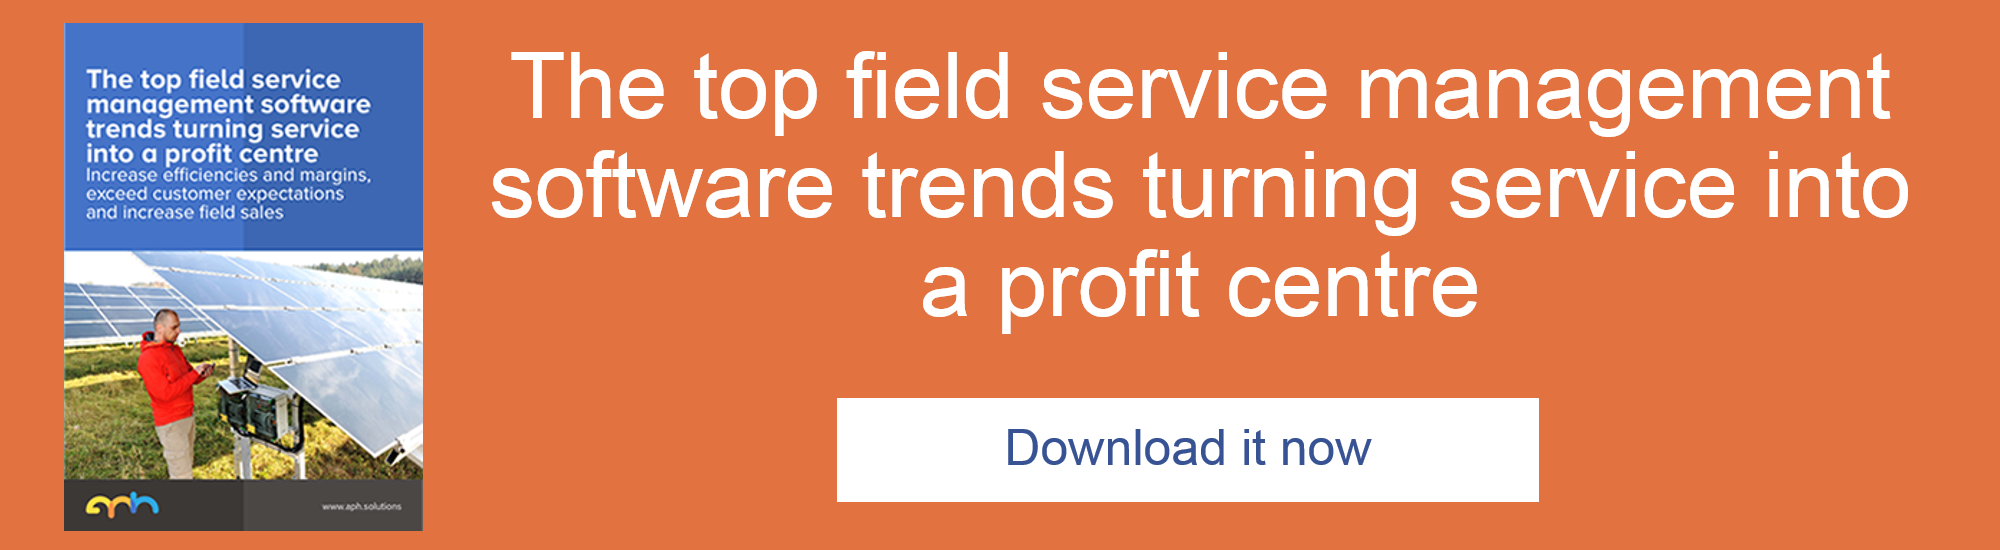 The_top_field_service_management_software_trends_turning_service_into_a_profit_centre